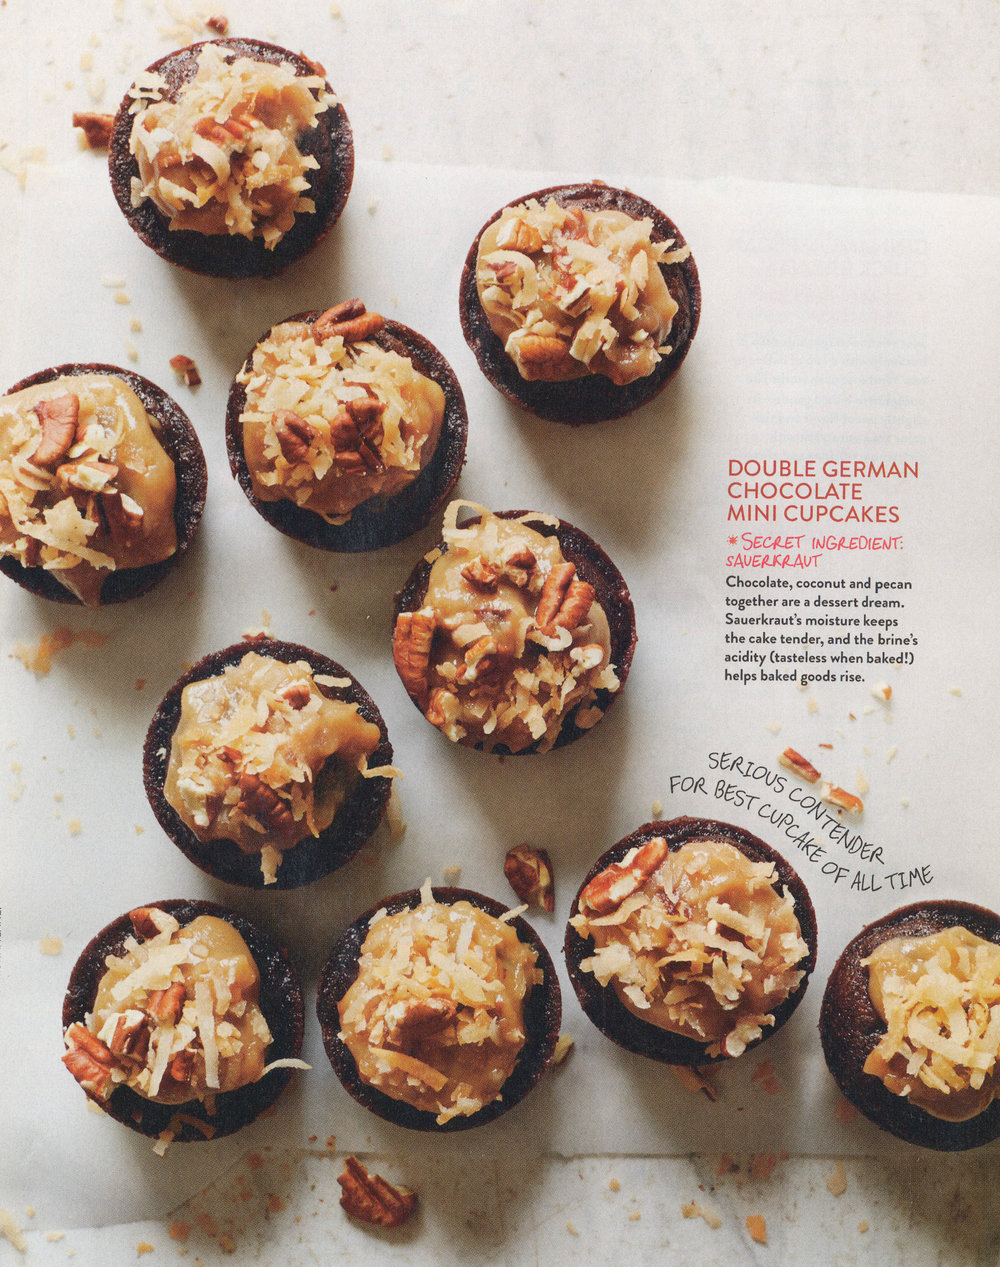 double german chocolate mini cupcakes.jpg